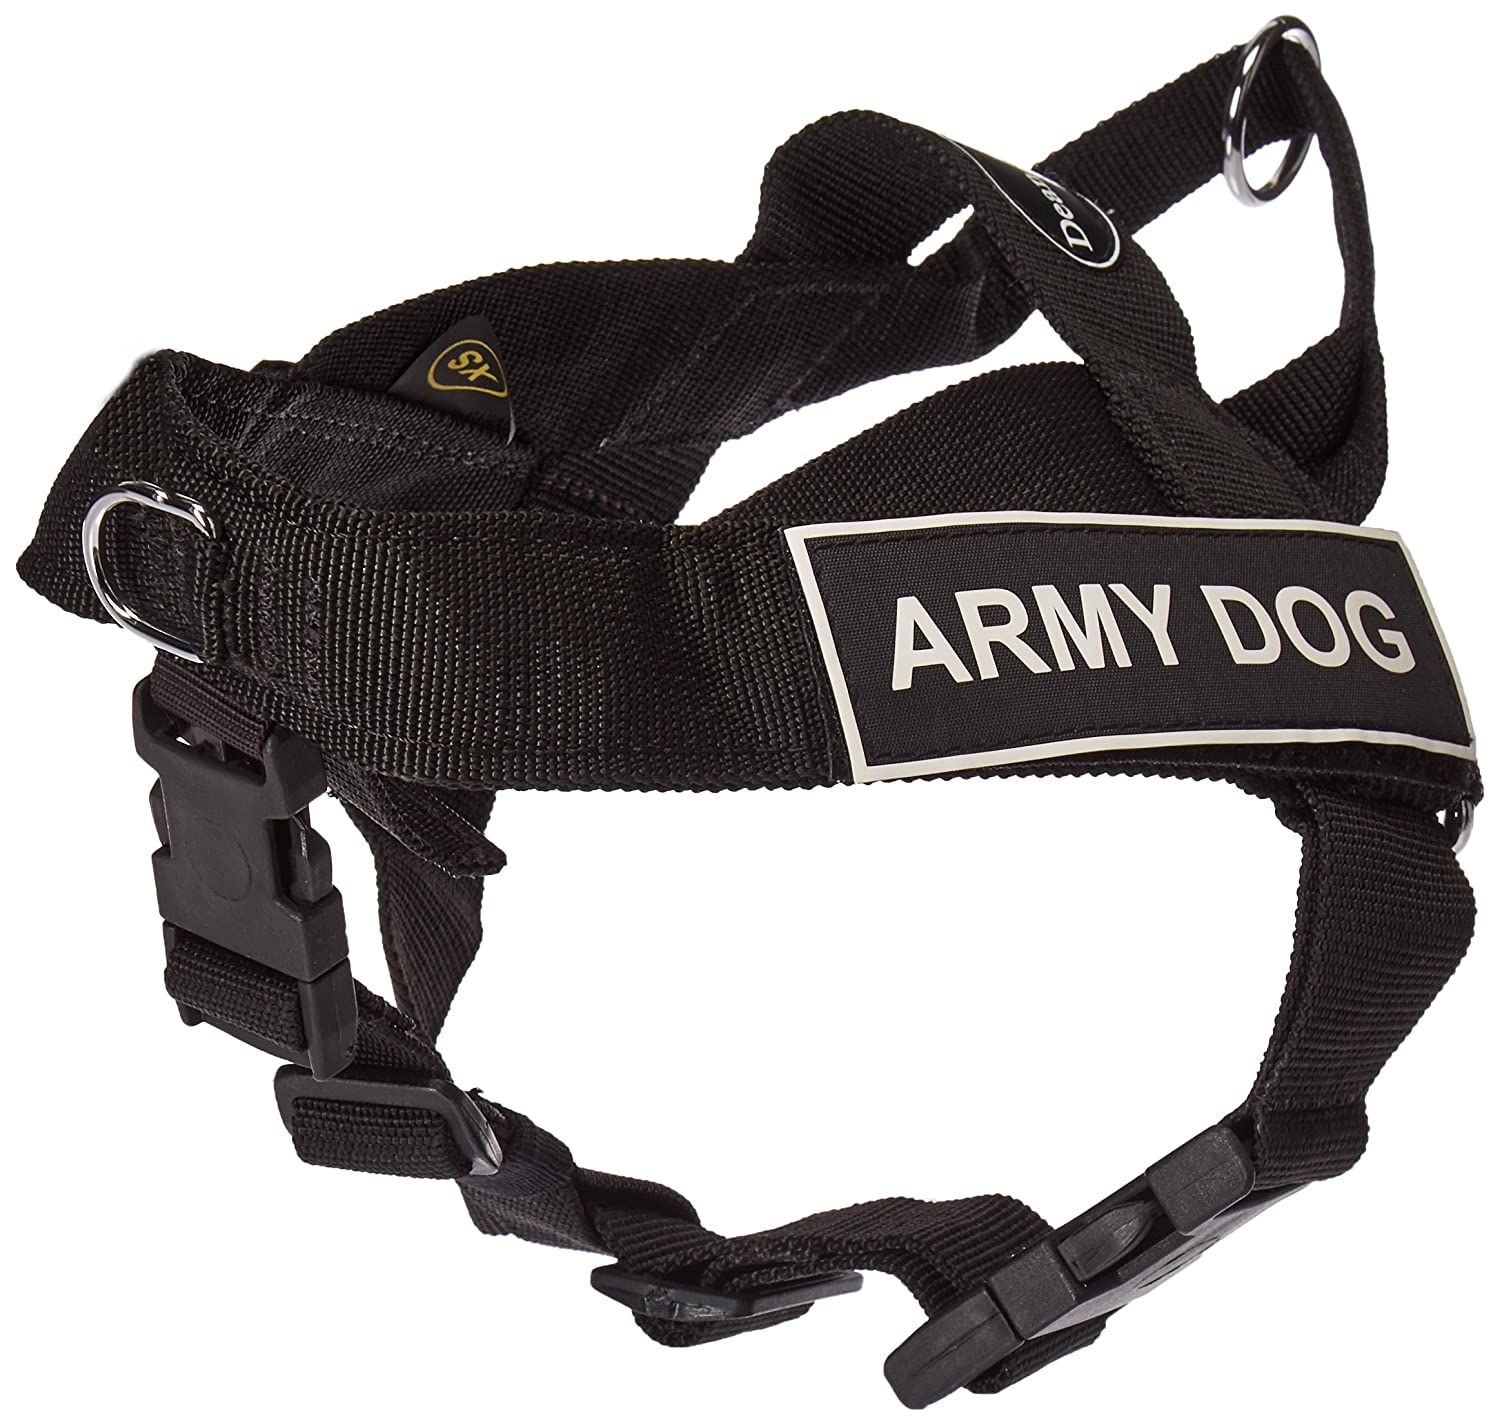 Dean & Tyler Universal No Pull 21-Inch to 25-Inch Dog Harness, X-Small, Army Dog, Black